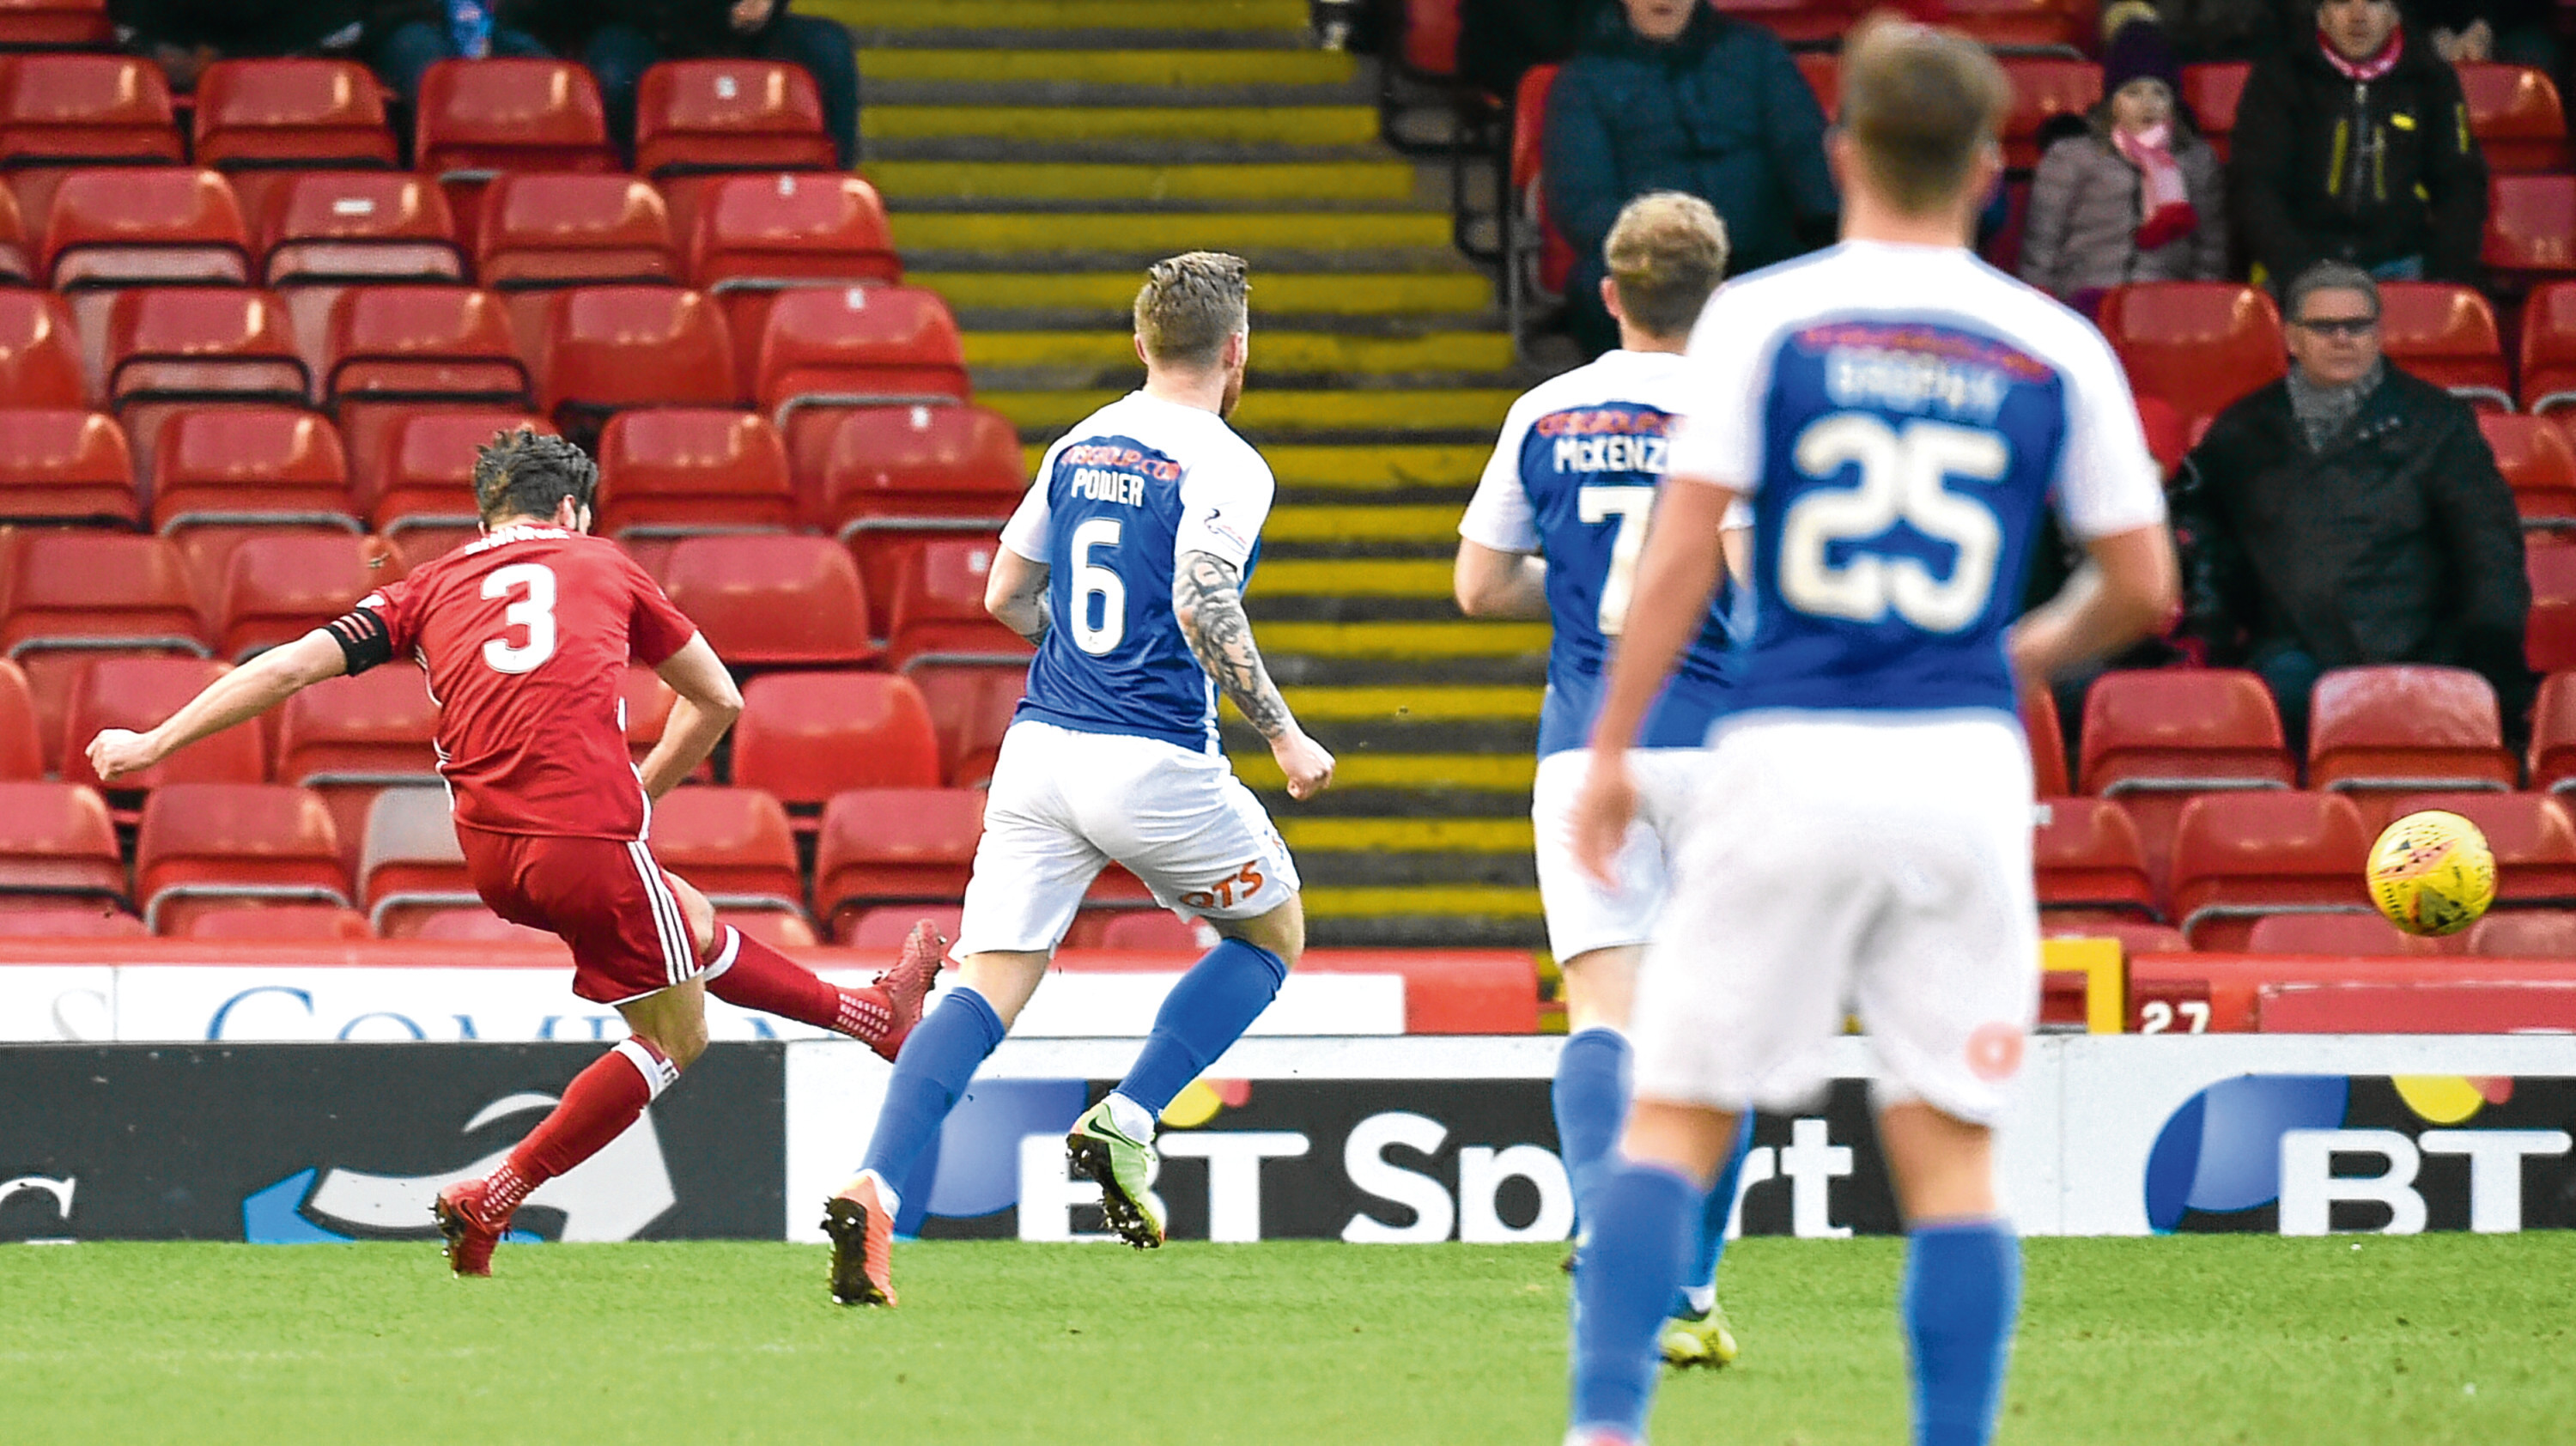 Aberdeen's Graeme Shinnie scores to make it 1-0 against Kilmarnock.